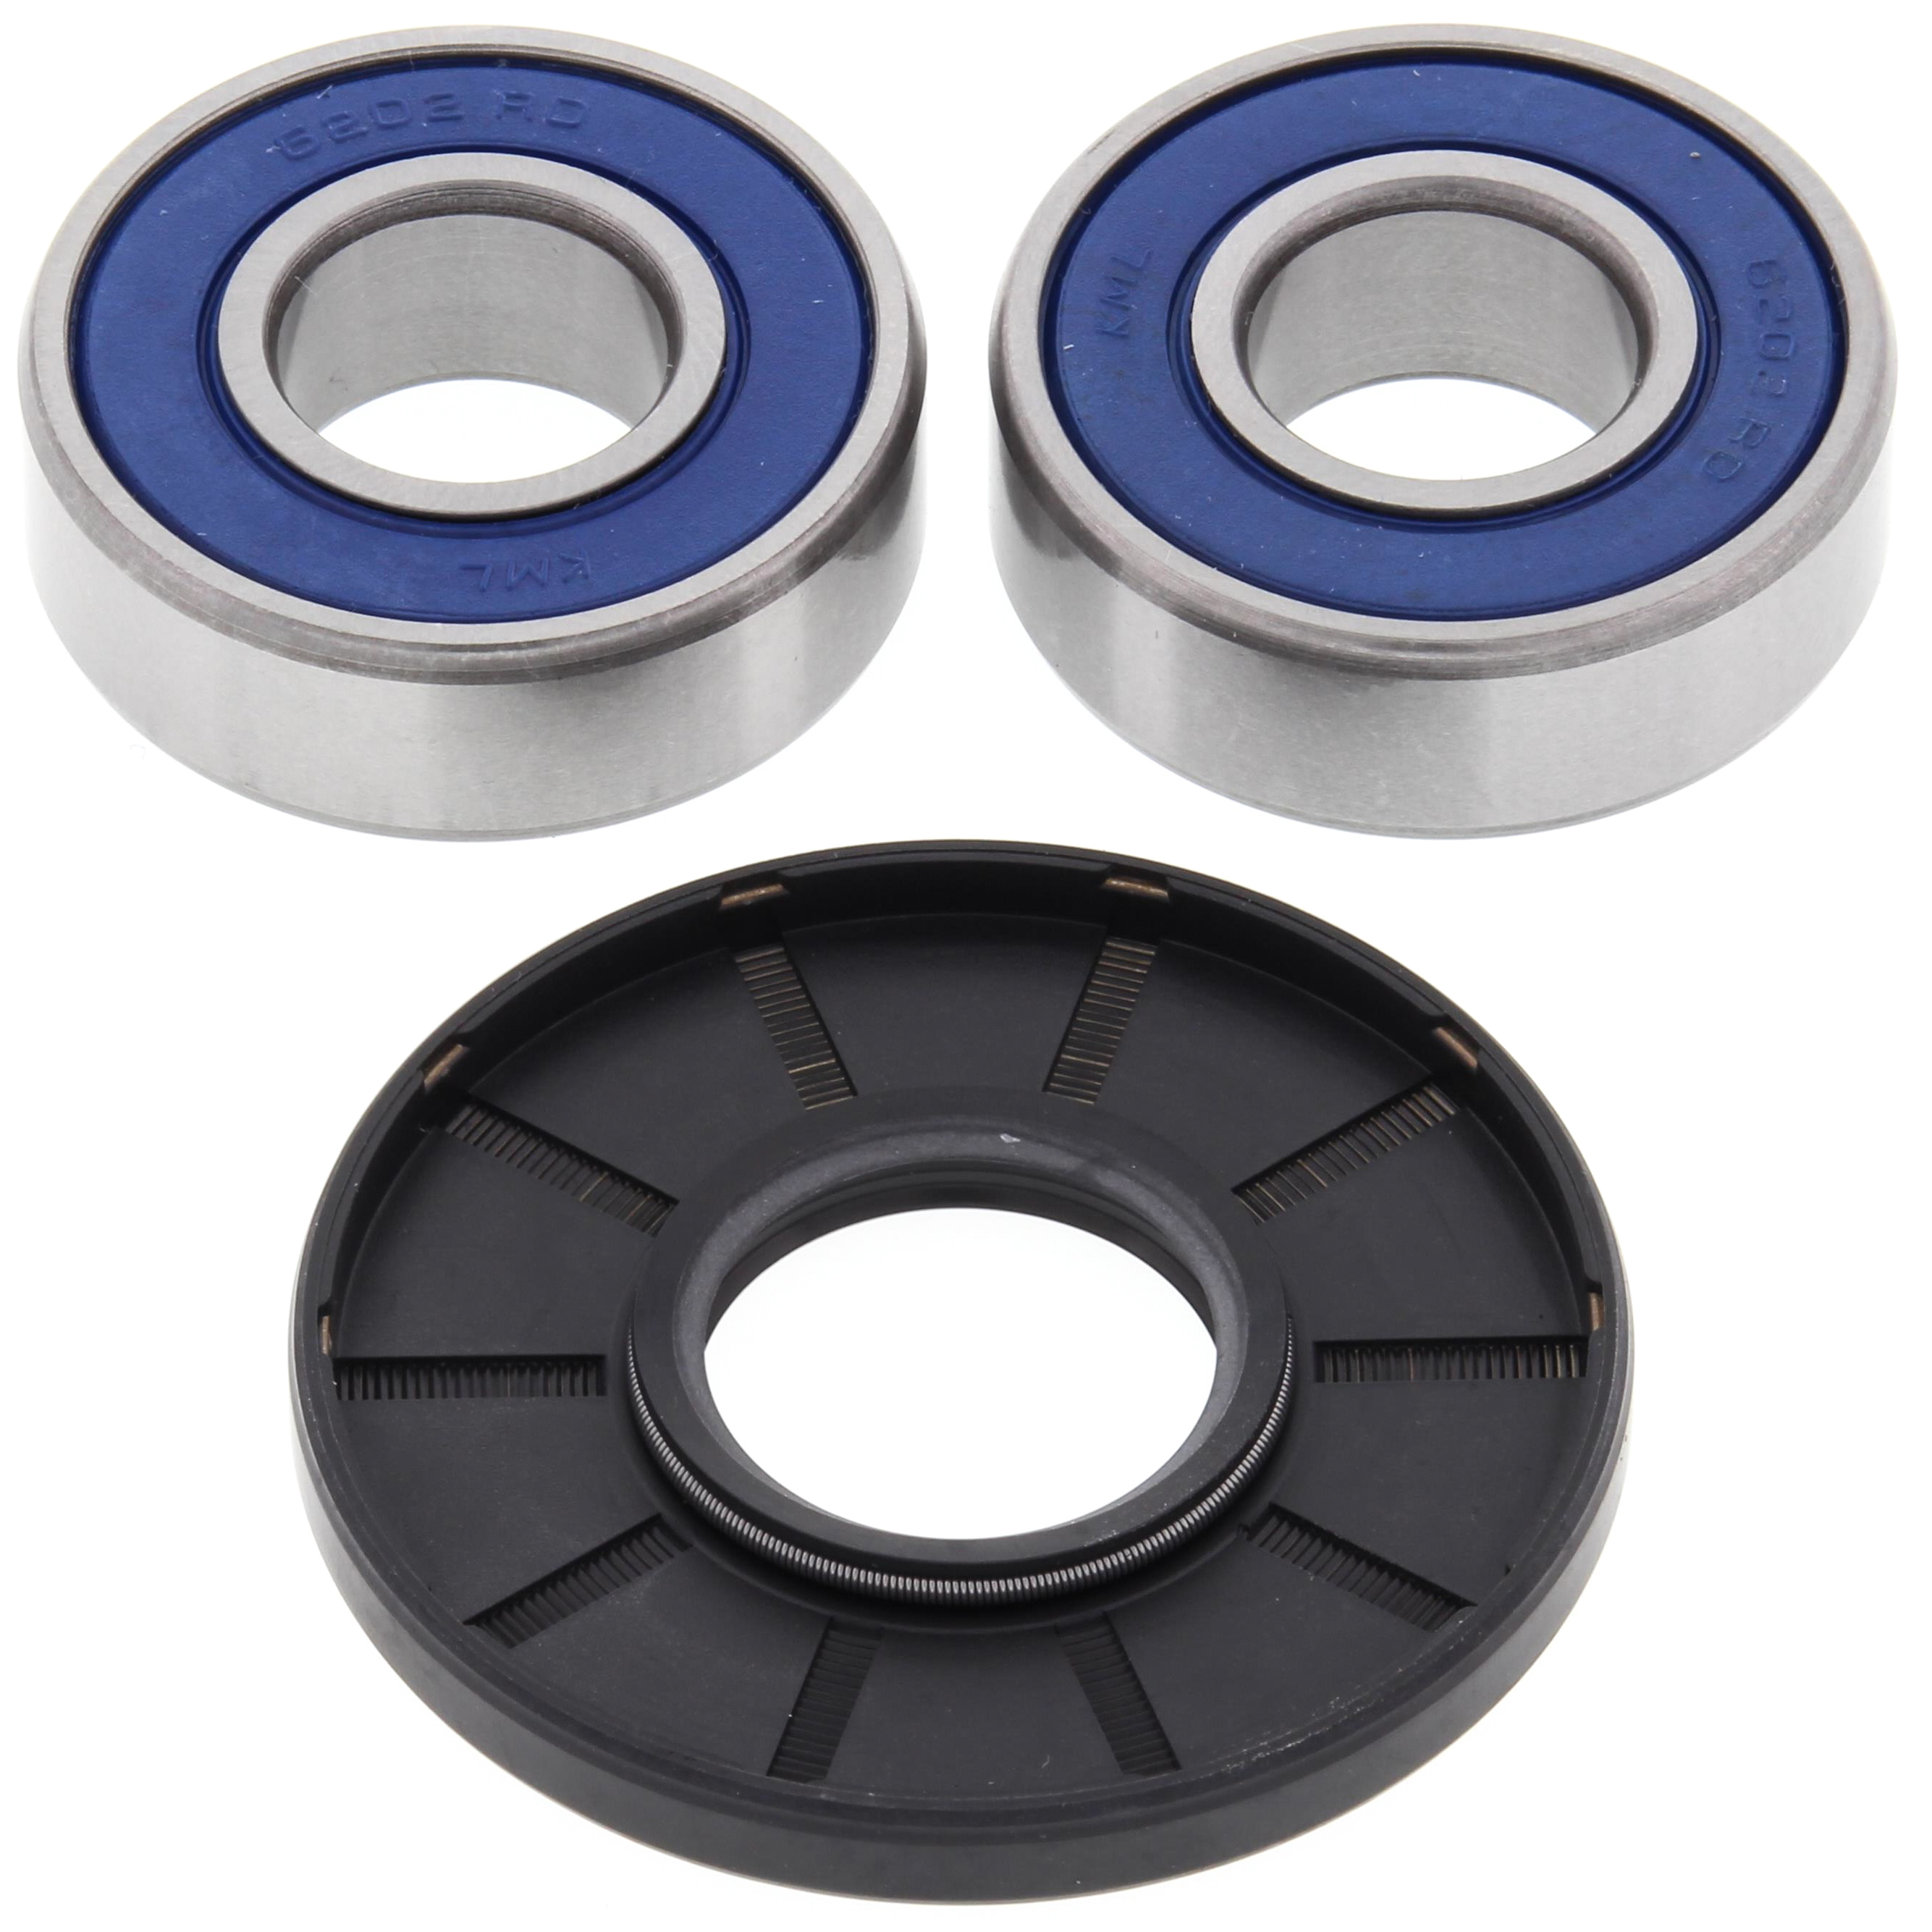 New All Balls Front Wheel Bearing Kit 25-1119 for Honda CR 250 R 81-83